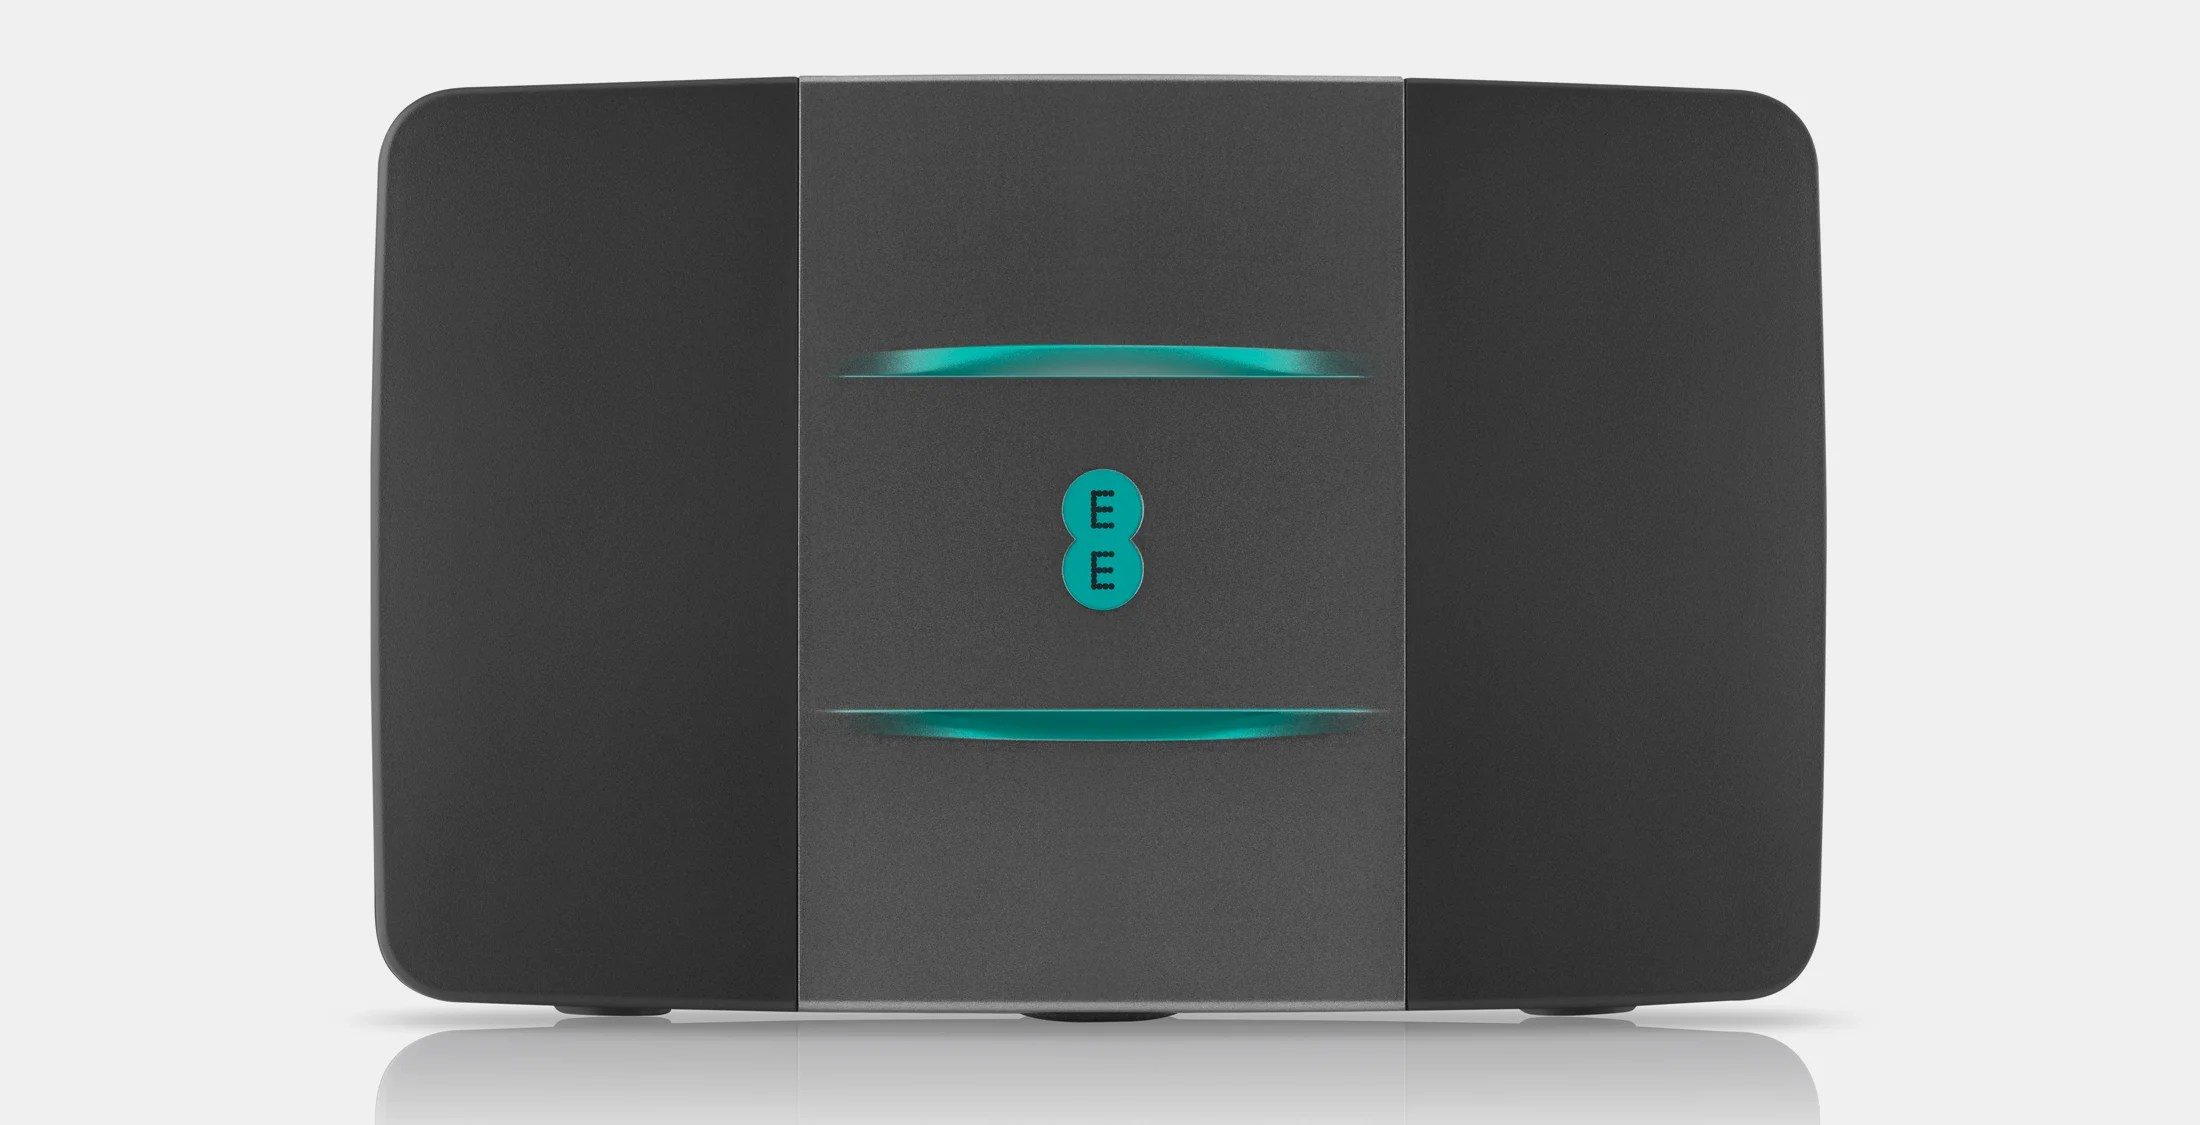 EE Outs 300Mpbs Fibre Max Broadband With Huge Bonus For